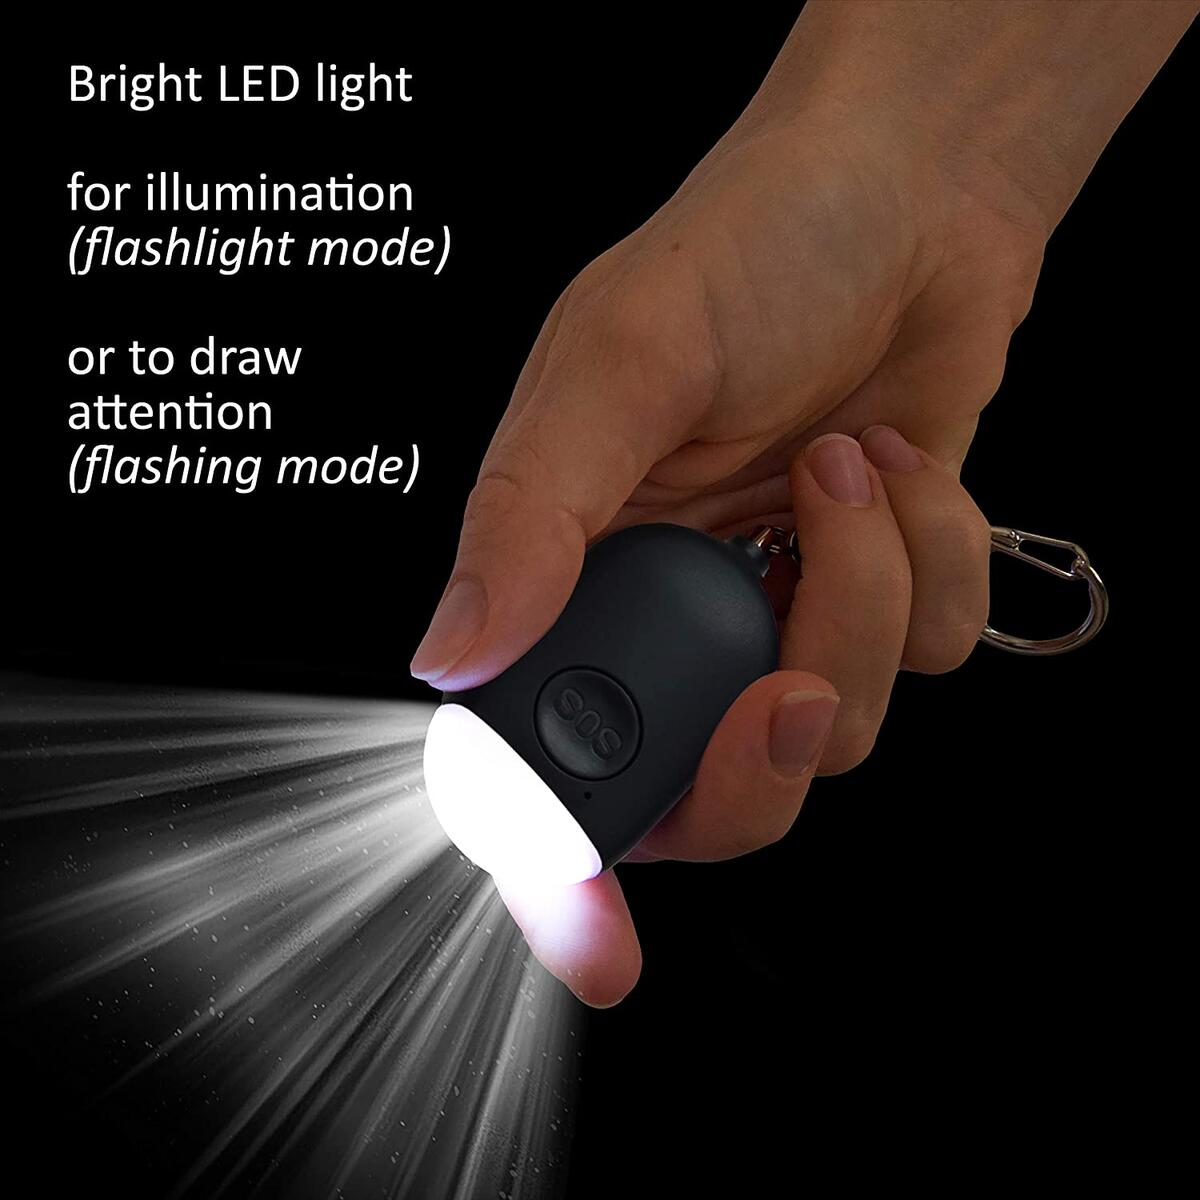 Rechargeable Personal Alarm Keychain with LED Light (Black)